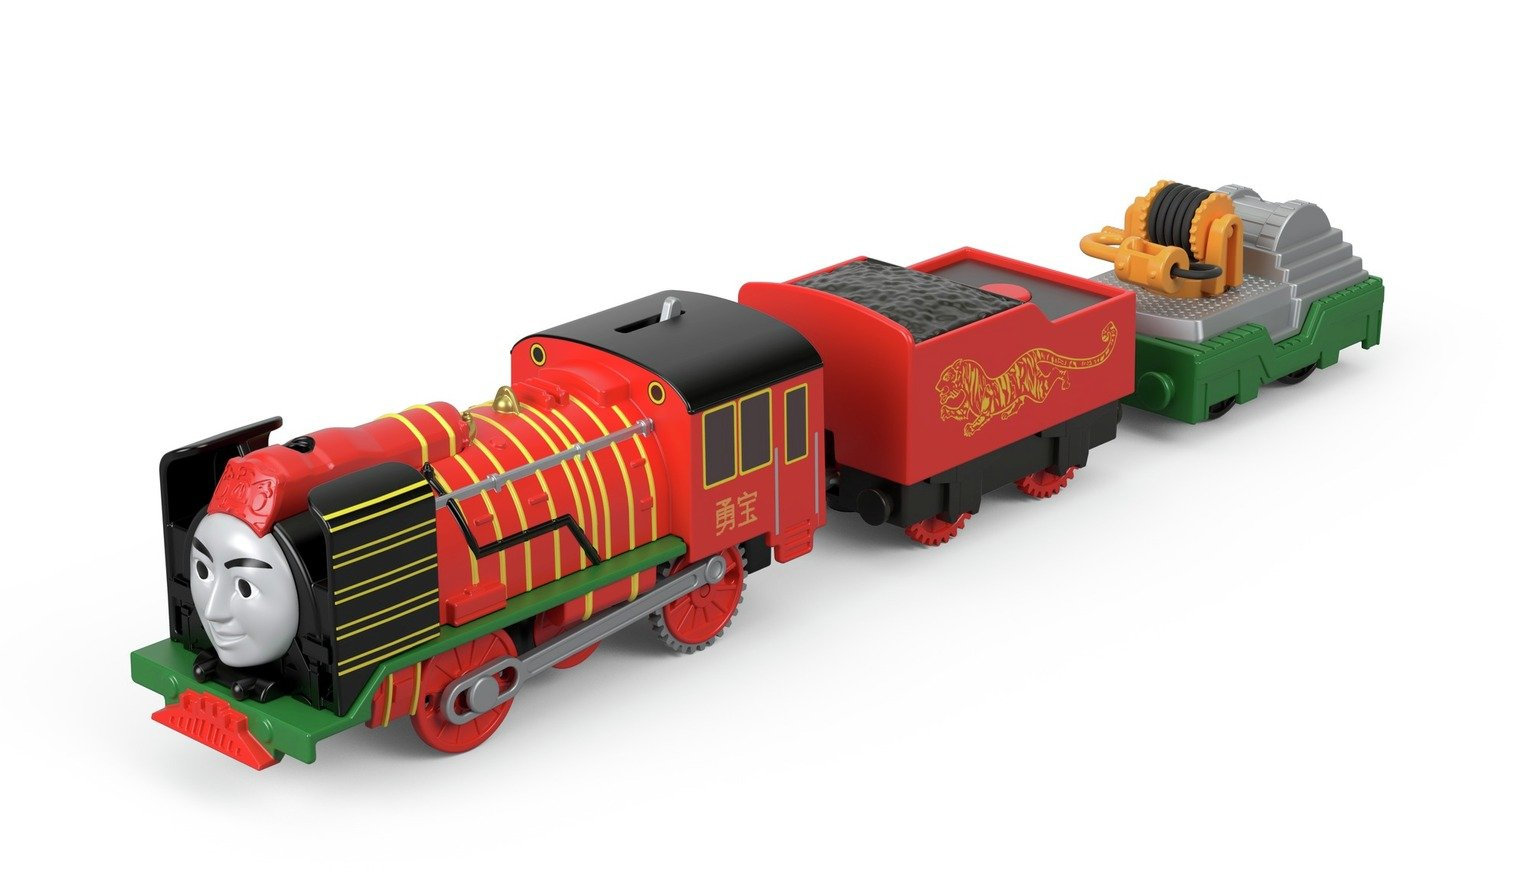 Thomas & Friends Thomas Motorised Yong Bao Rescue